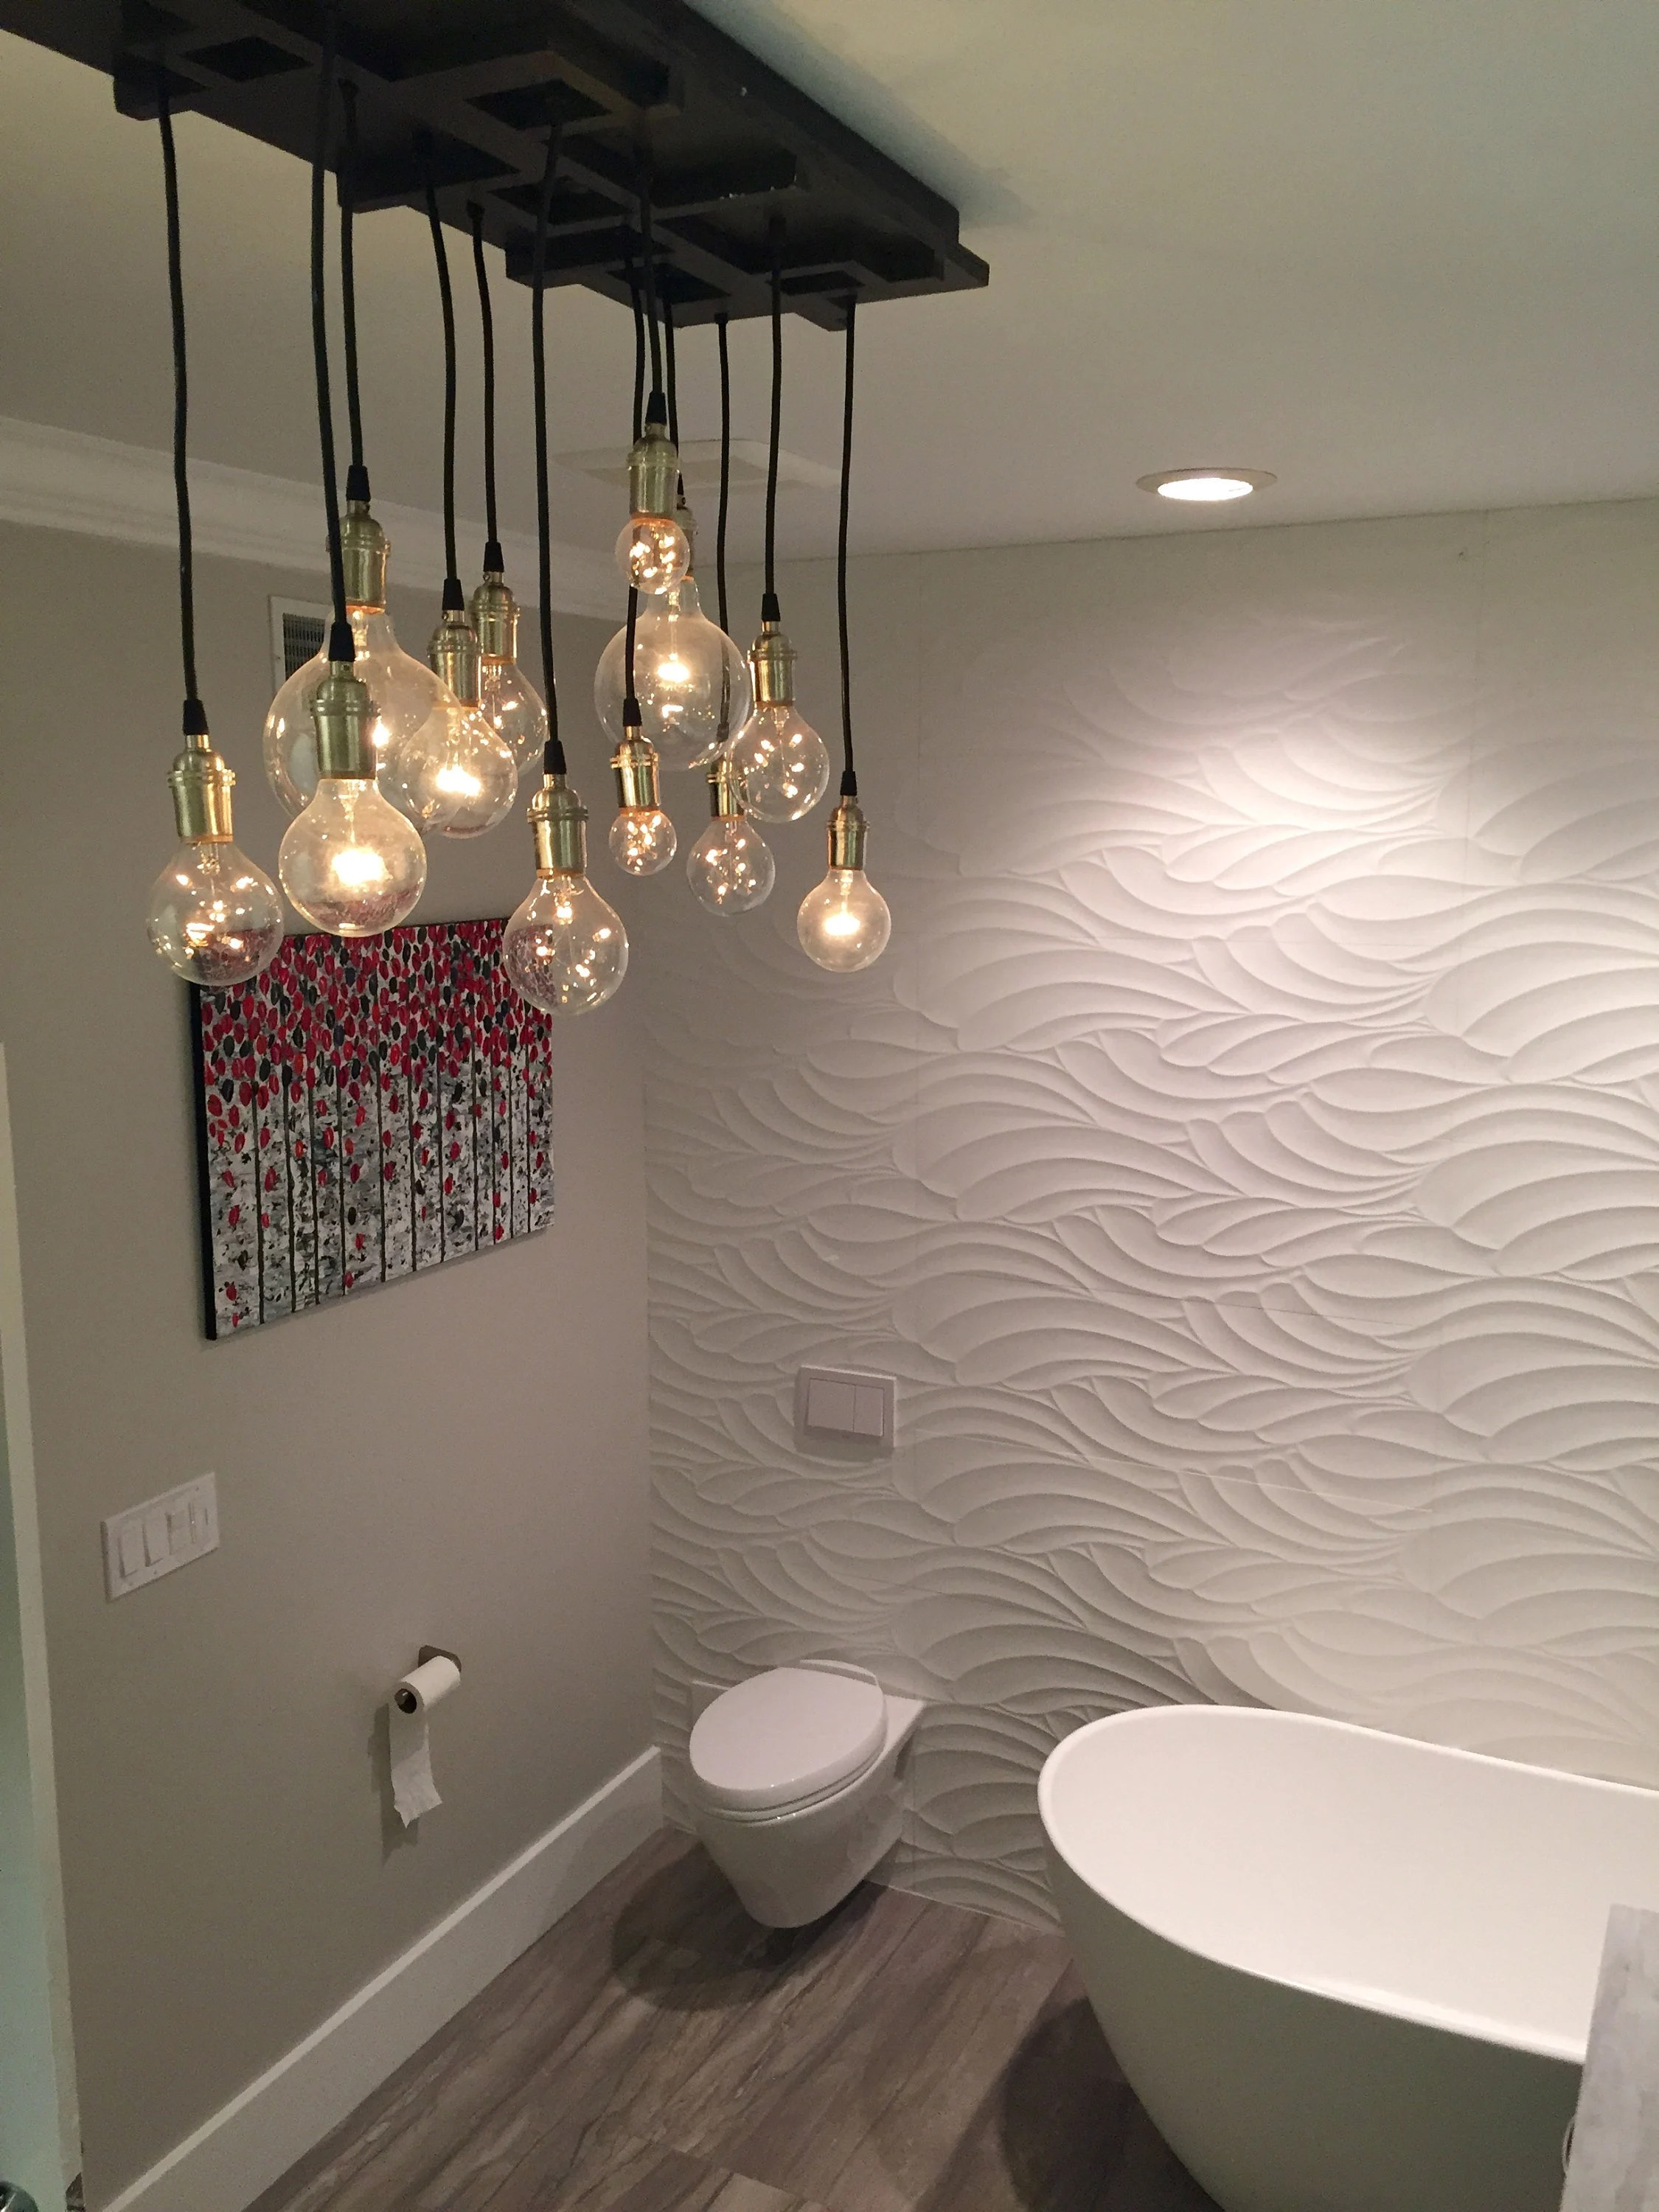 Bathroom Chandelier Lighting Bathroom Chandelier Bathroom Lighting Vanity Lighting Vanity Chandelier Mcm Mission Style Lighting Mission Style Chandelier